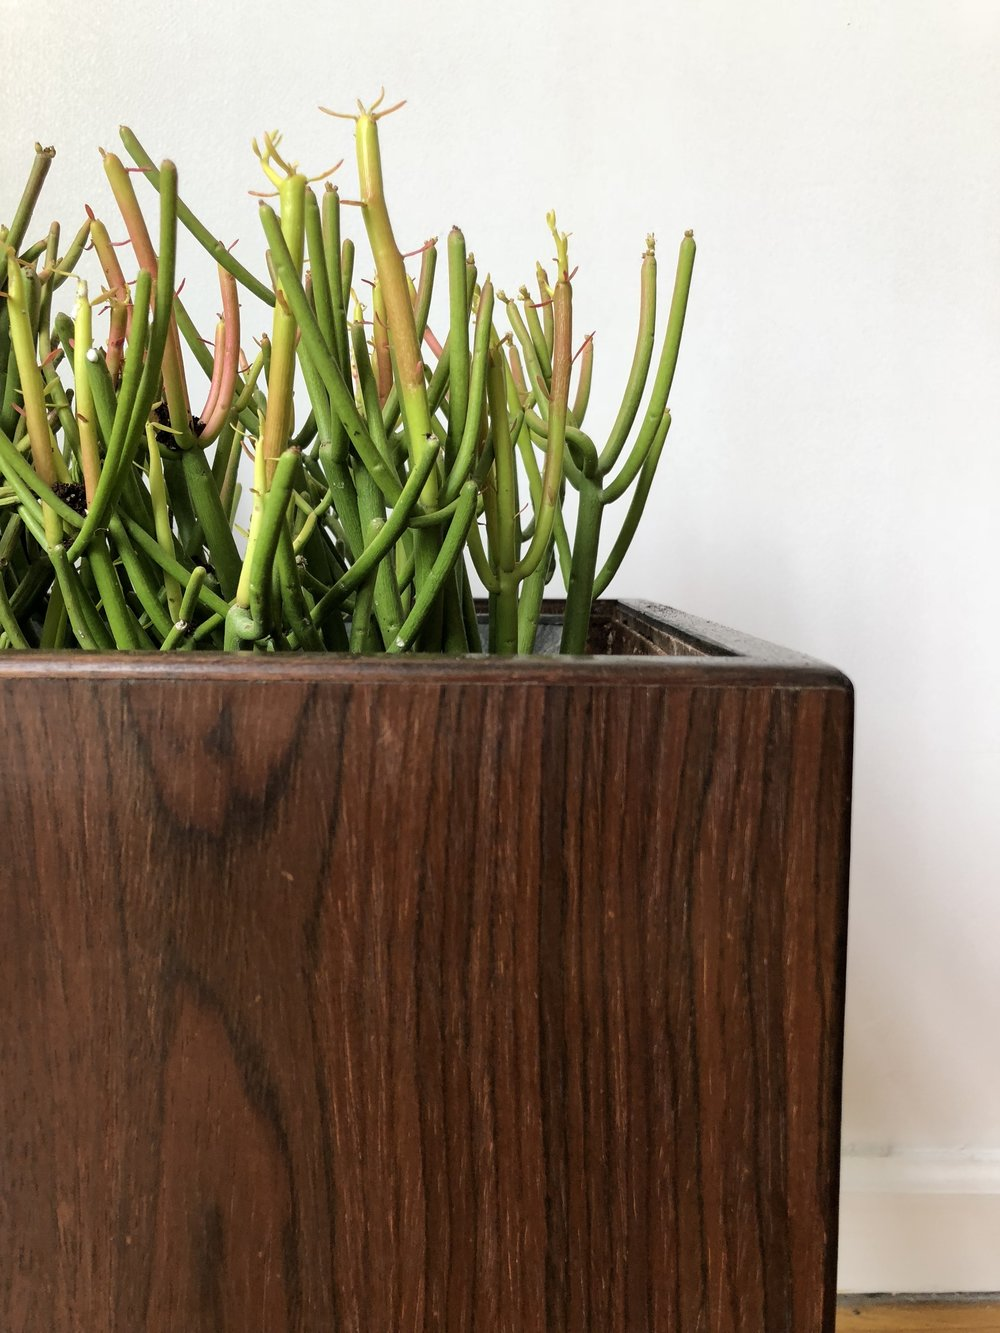 1960s Danish Kai Kristiansen for Salin Mobler Rosewood Planter